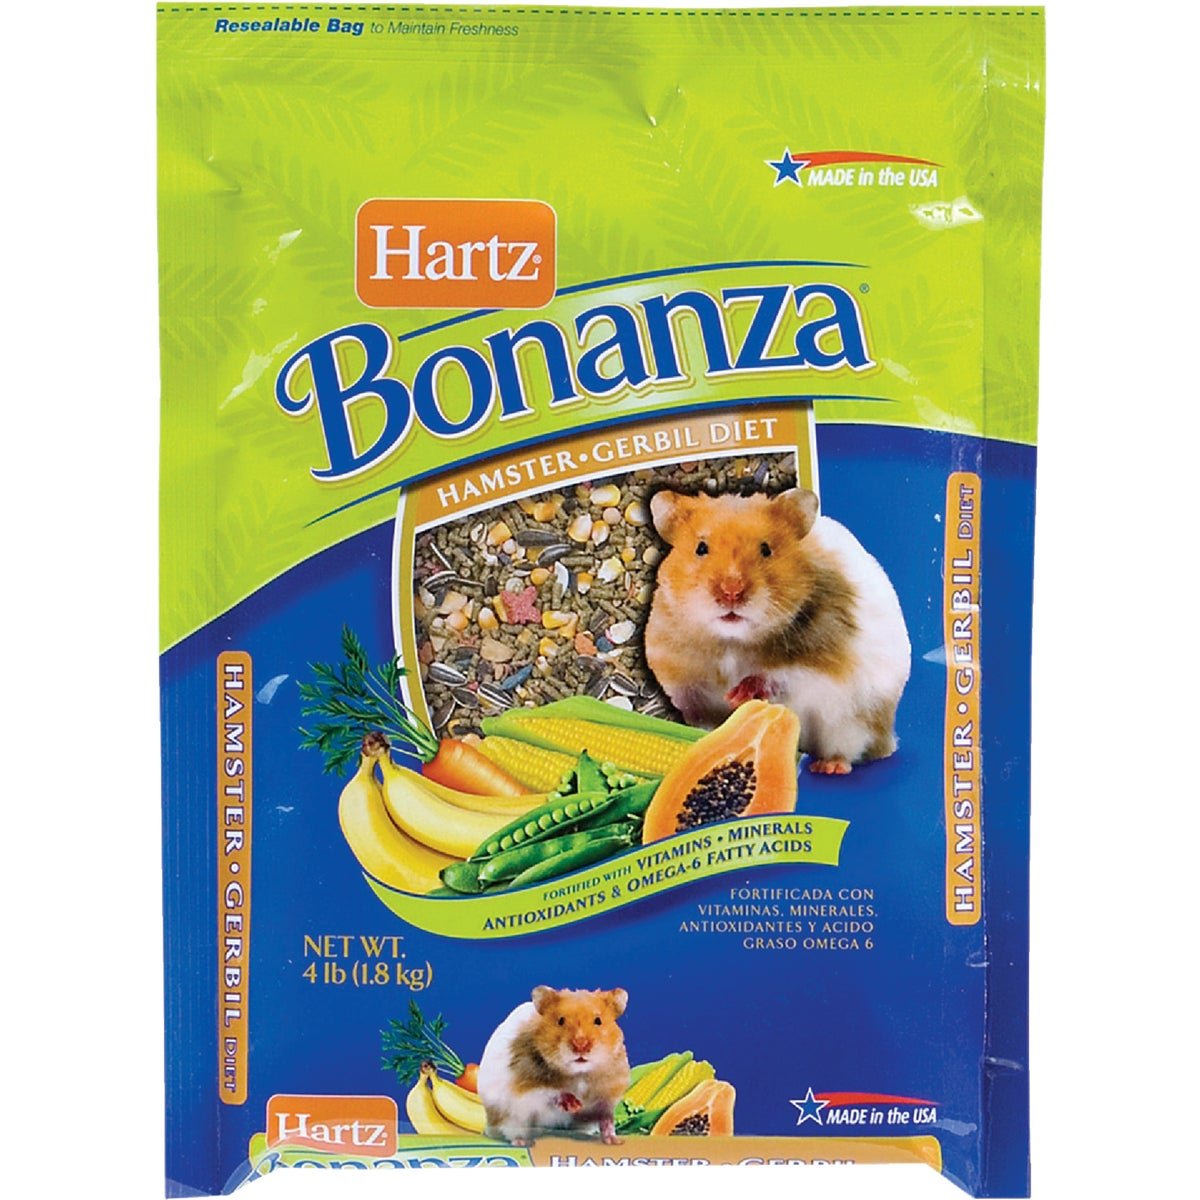 4LB HAMSTER&GERBIL FOOD - 3270097617 by Hartz Mountain Corp